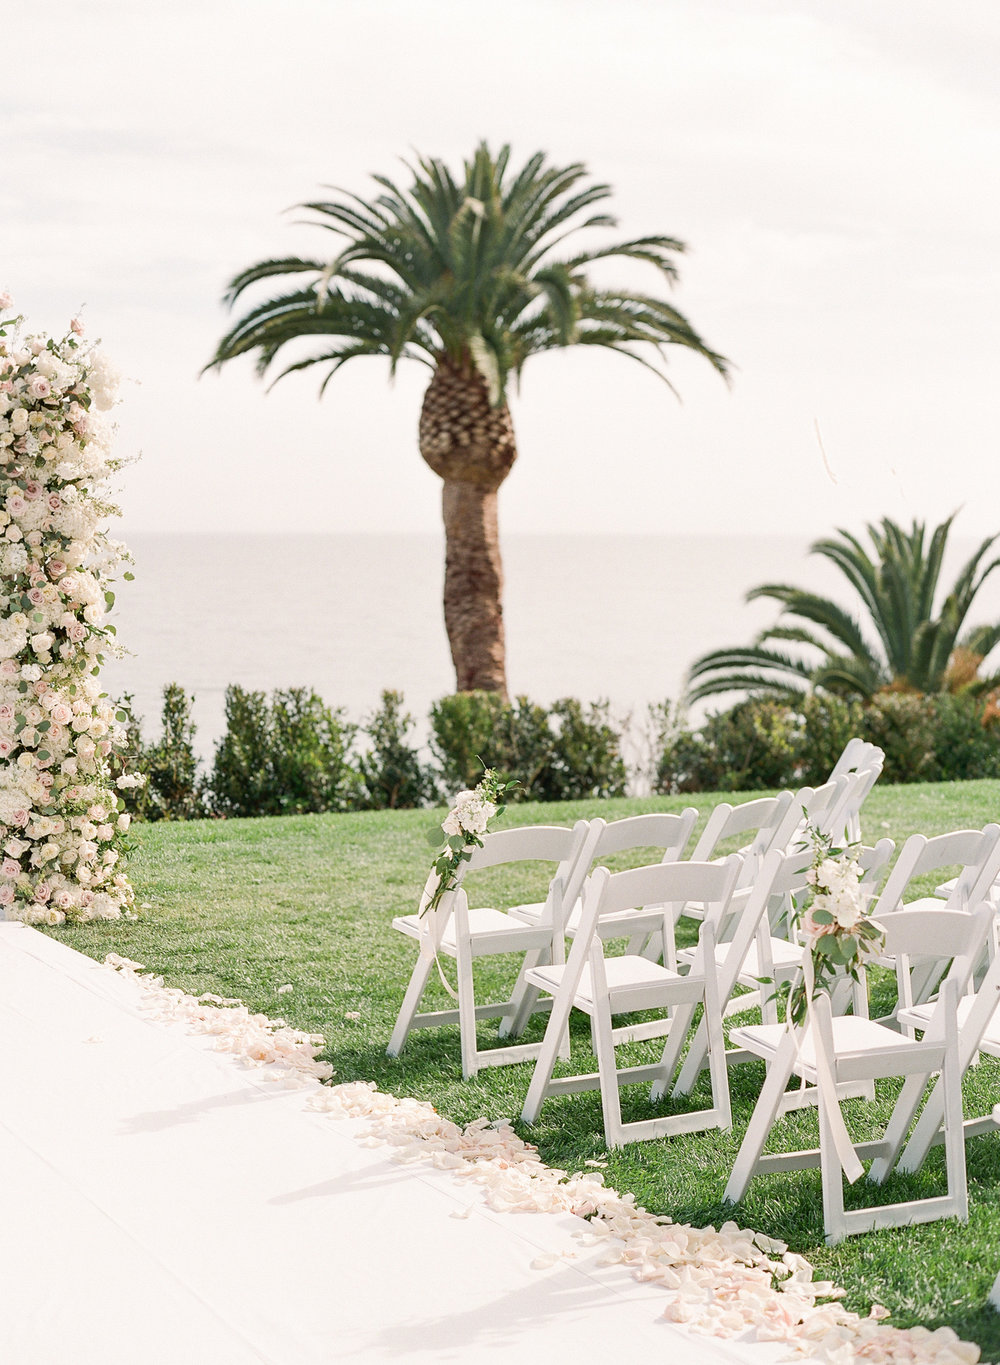 Bel-Air-Bay-Club-Wedding-Film-17.jpg